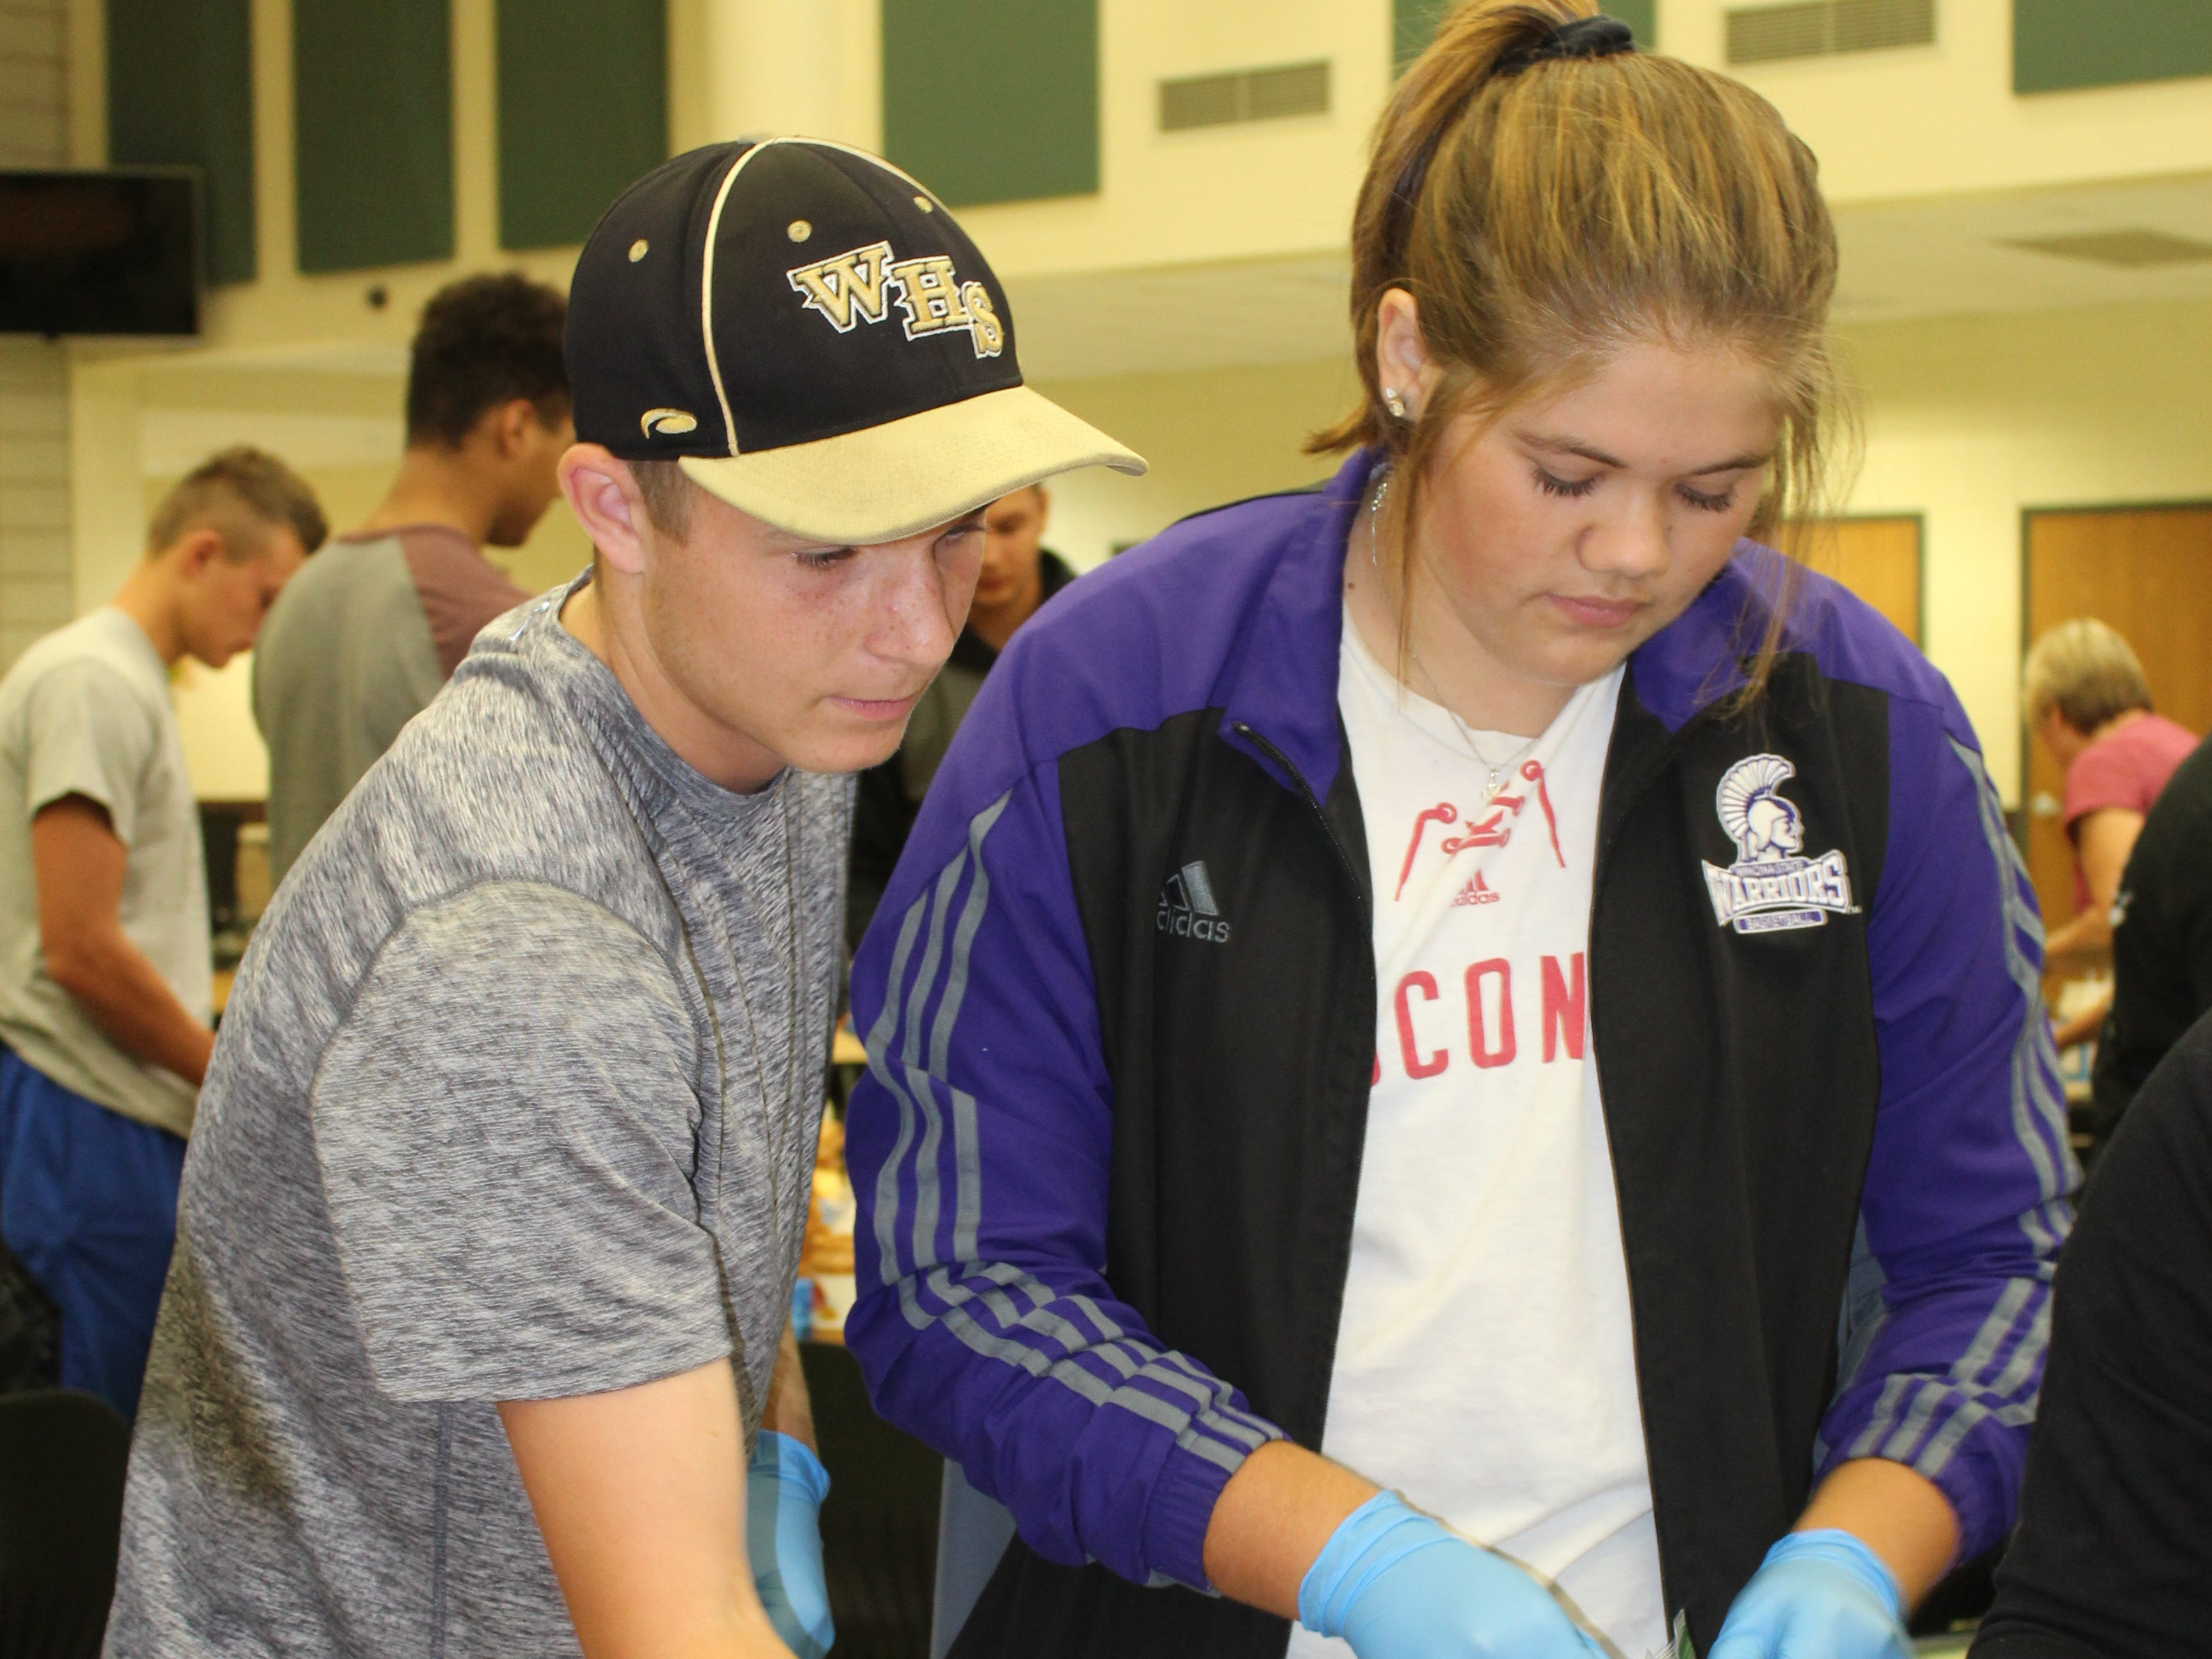 Waupun FFA volunteers help make sandwiches for utility workers and volunteers helping in the wake of a July 28 tornado.